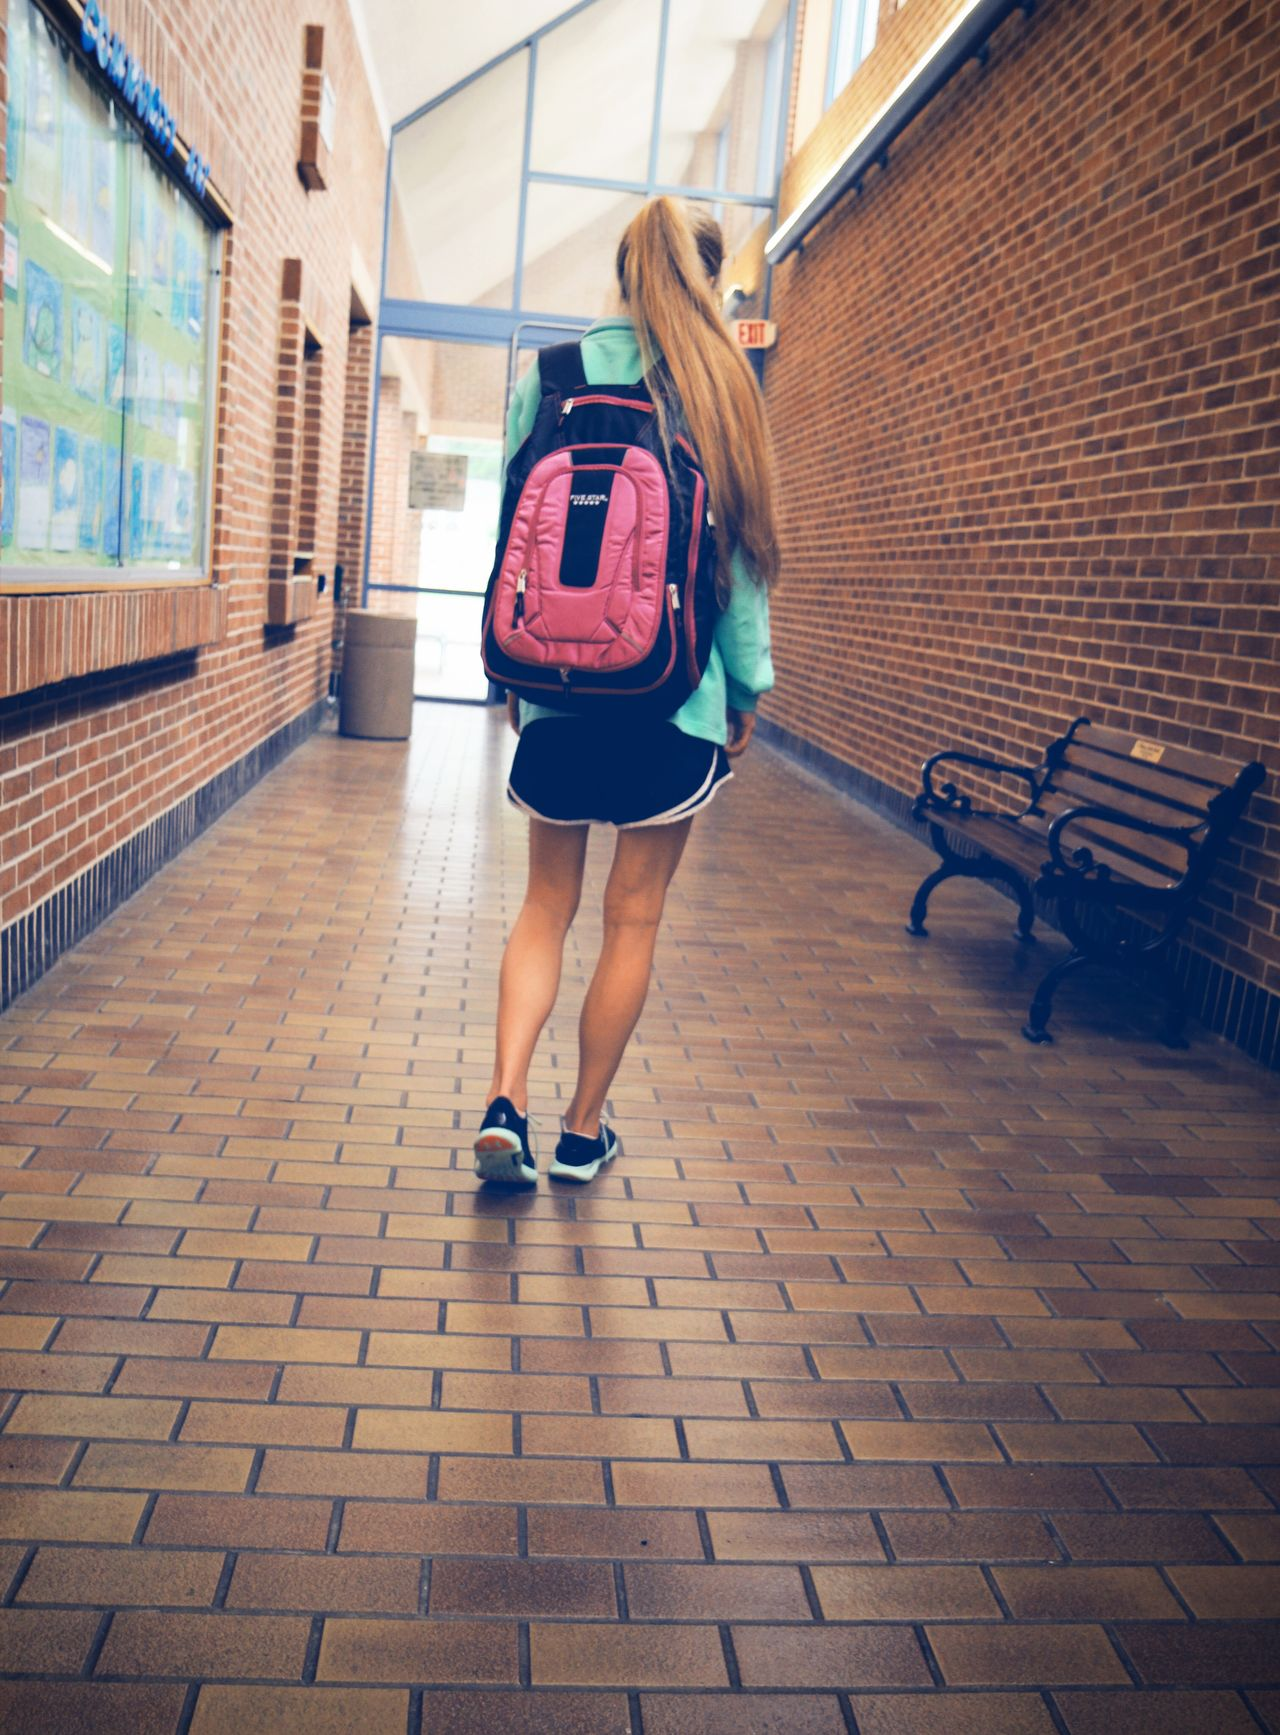 Lifestyles One Person School Class School Flow School Life  Backpack Young Adult Young Women Life